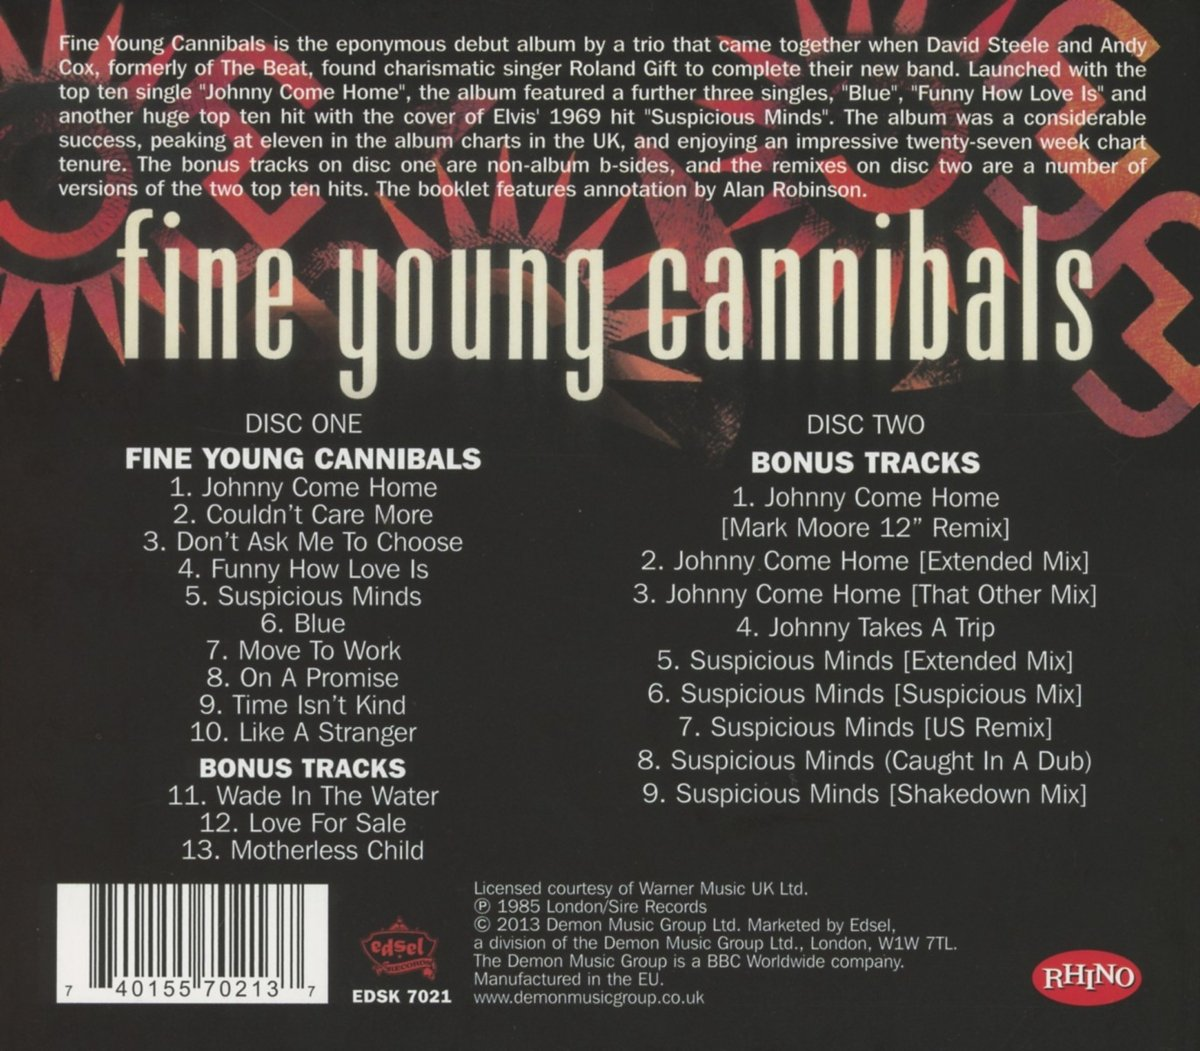 Fine young cannibals movie soundtracks — photo 5